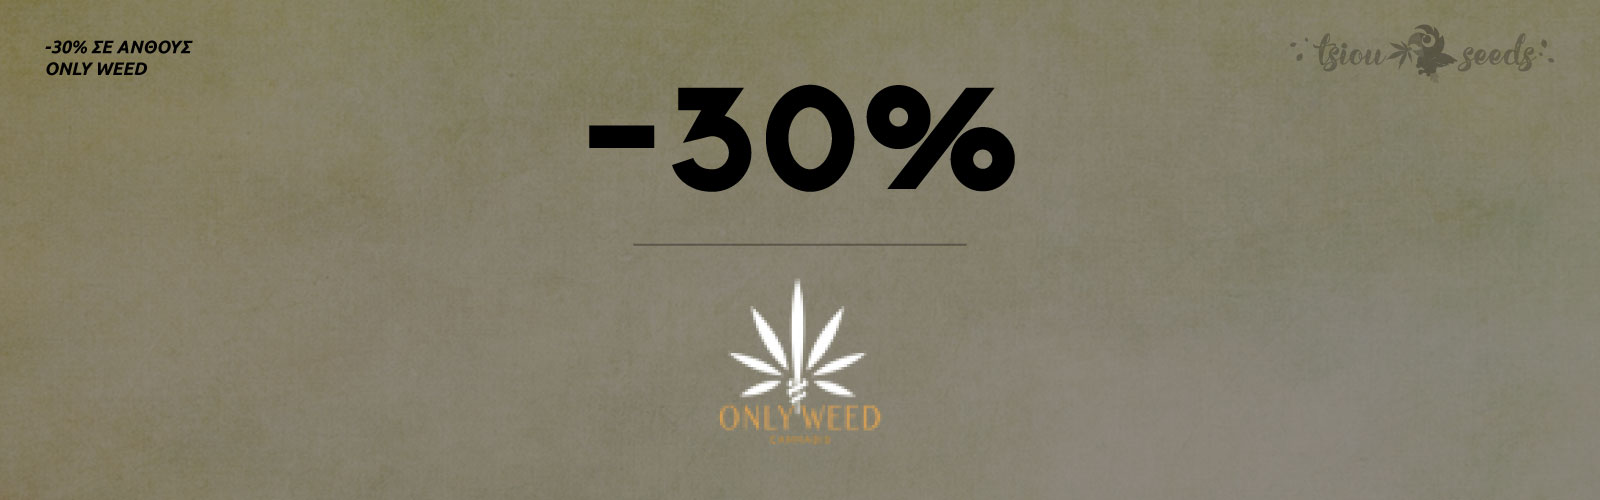 OnlyWeed-Offer